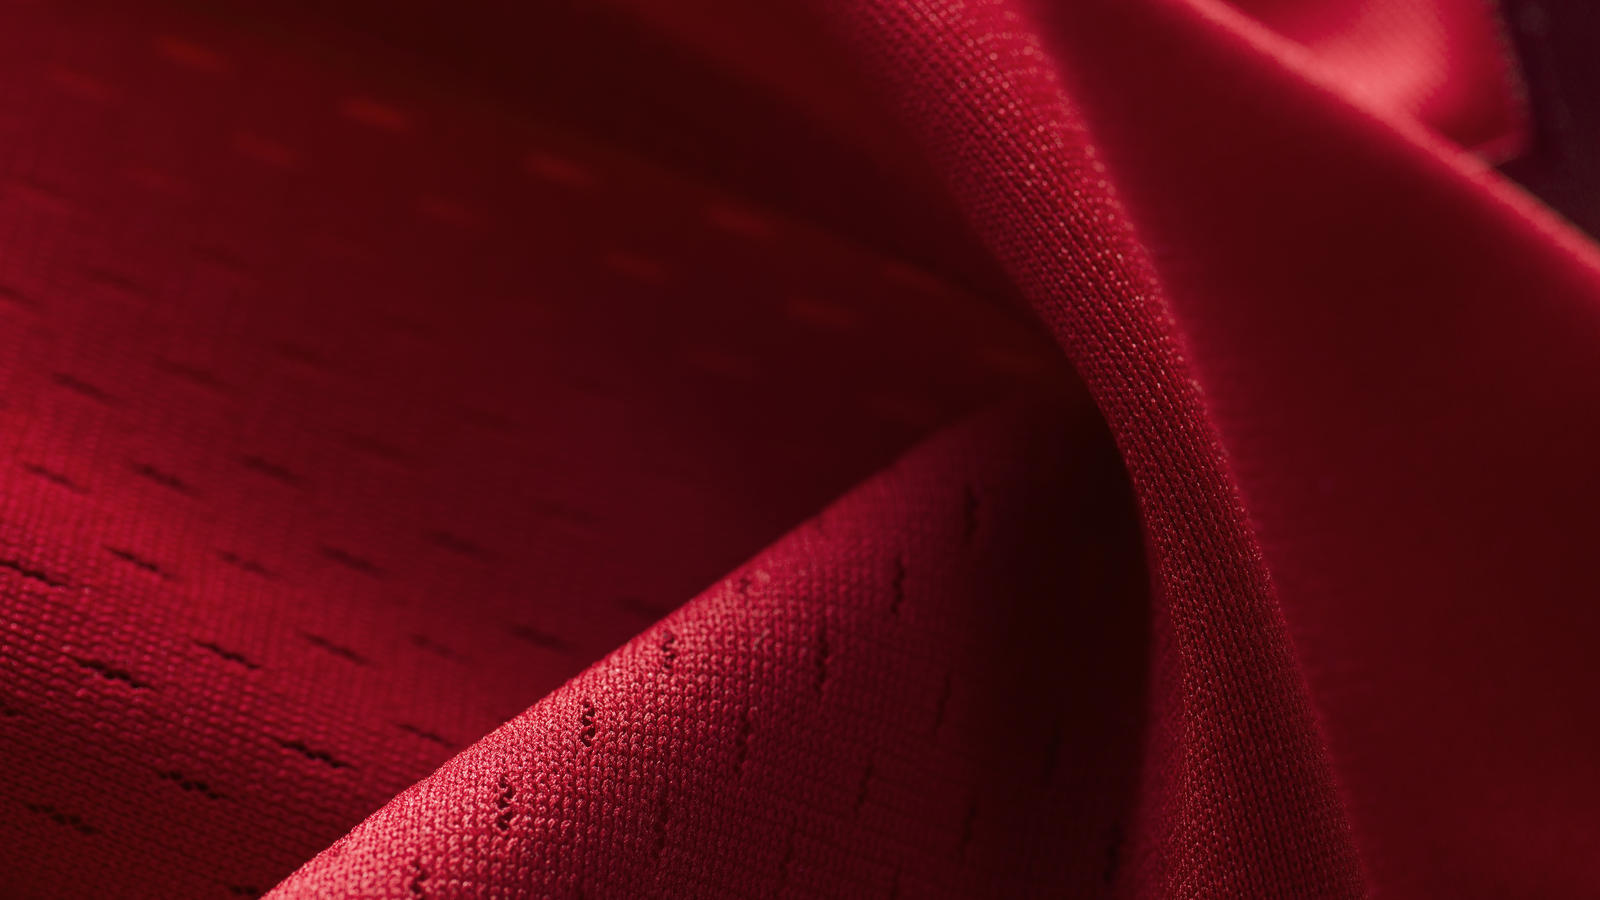 fa13_at_drenchpack_49ers_details_004